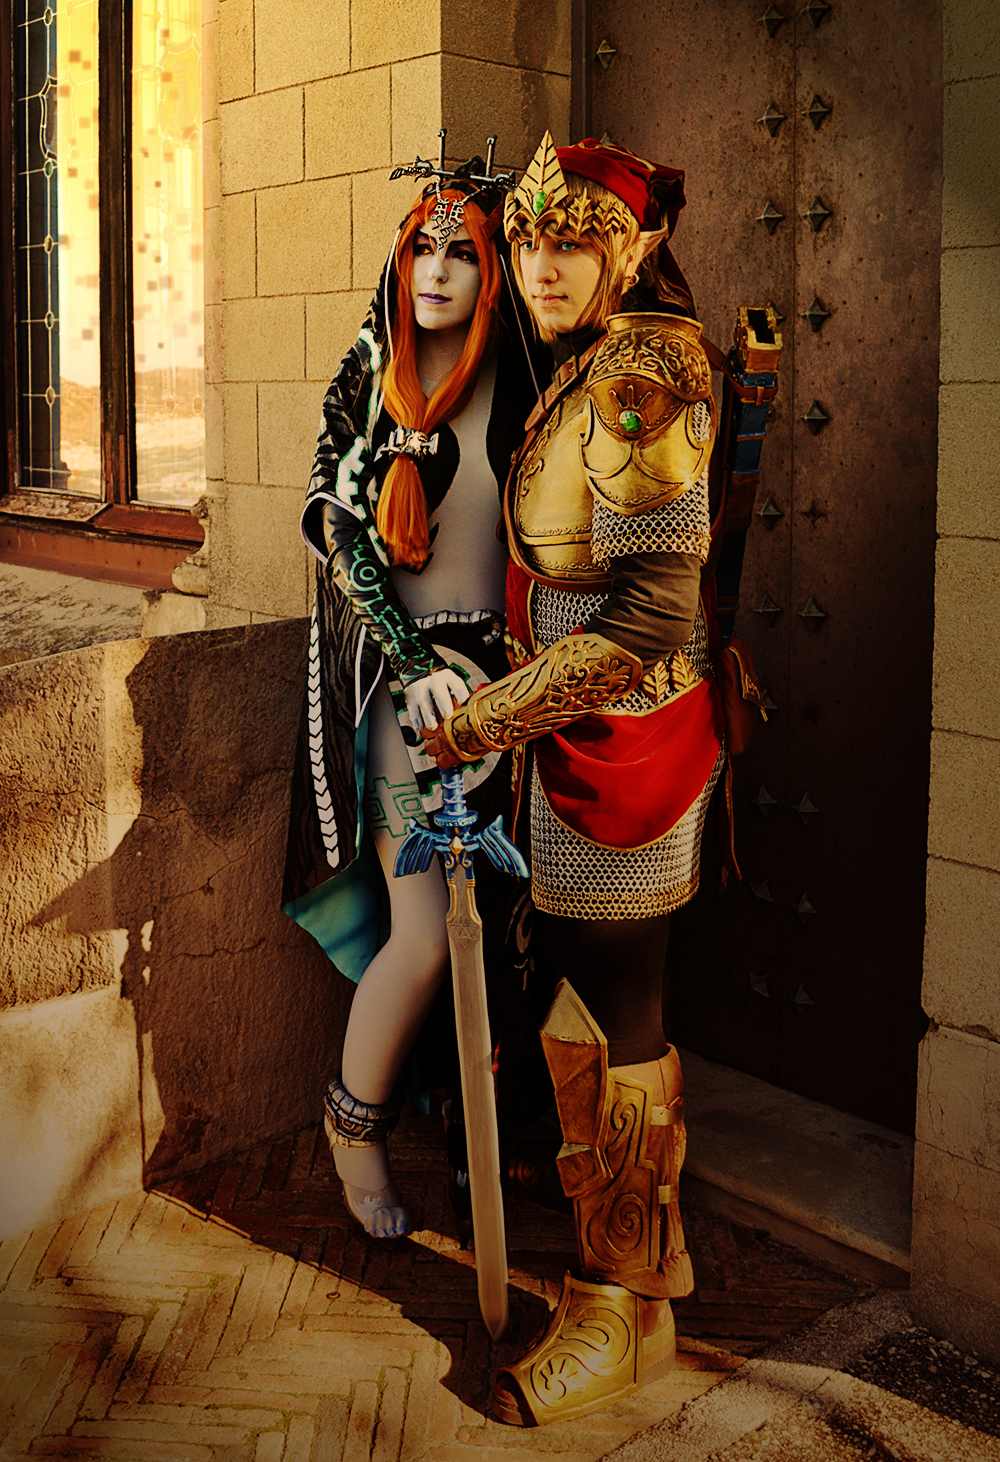 Link+Midna Fullbody by Yurai-cosplay